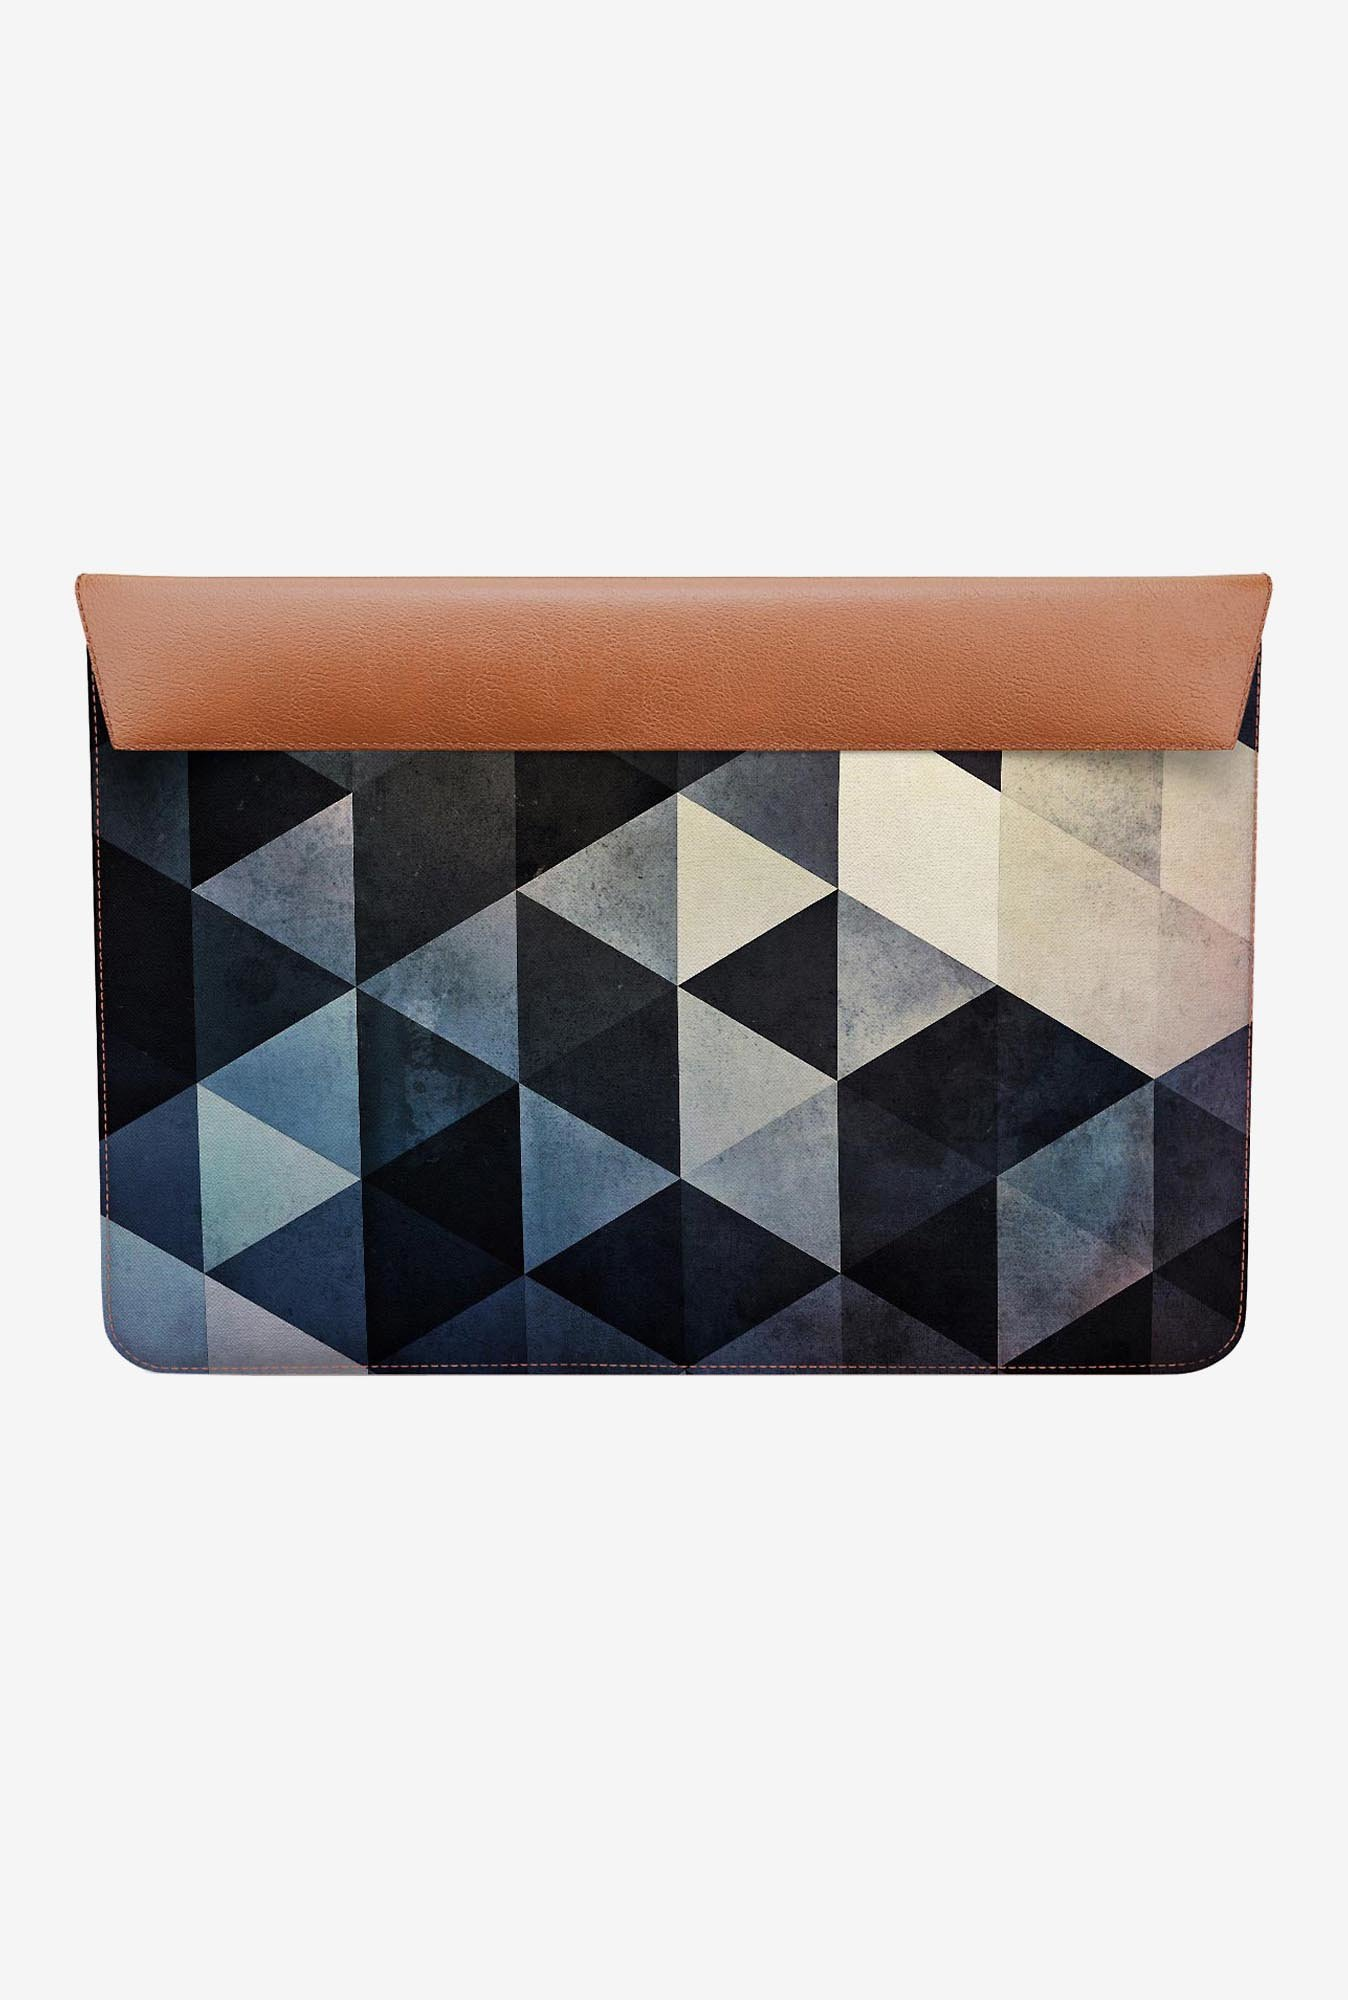 "DailyObjects Rzrz Macbook Air 11"" Envelope Sleeve"